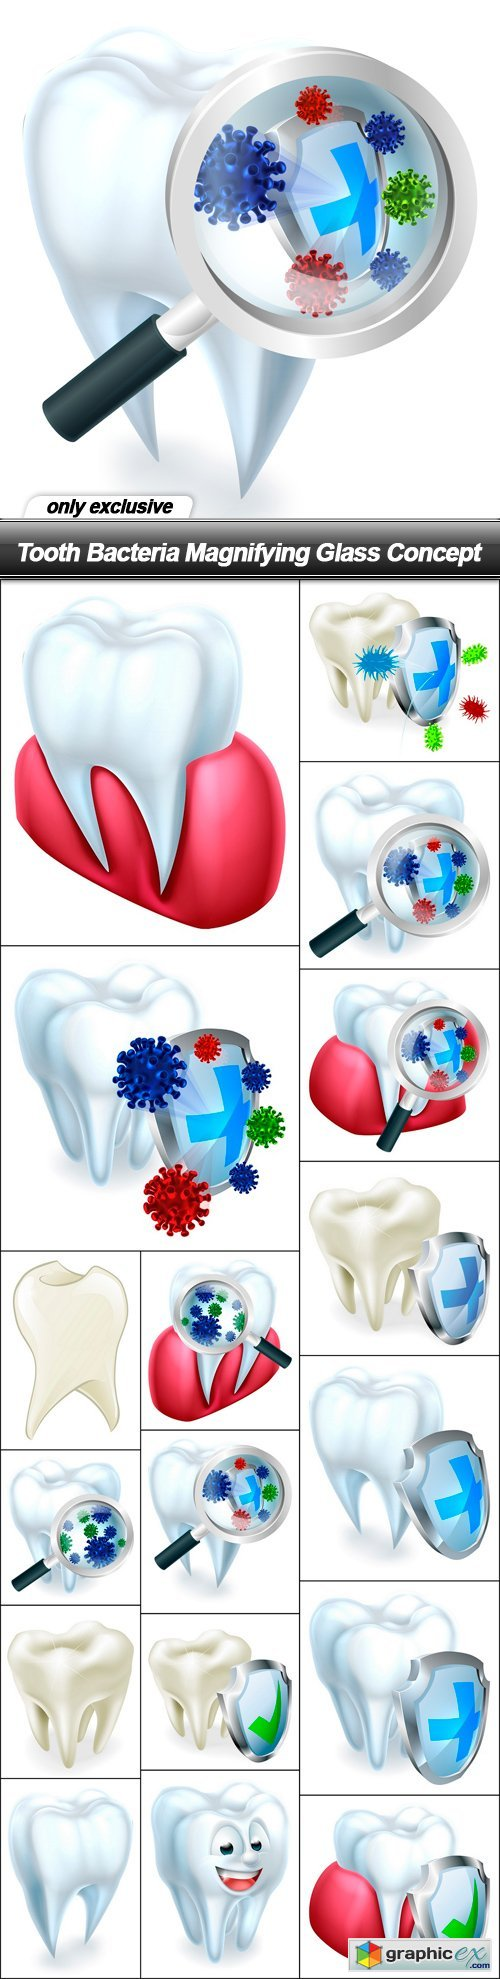 Tooth Bacteria Magnifying Glass Concept - 17 EPS